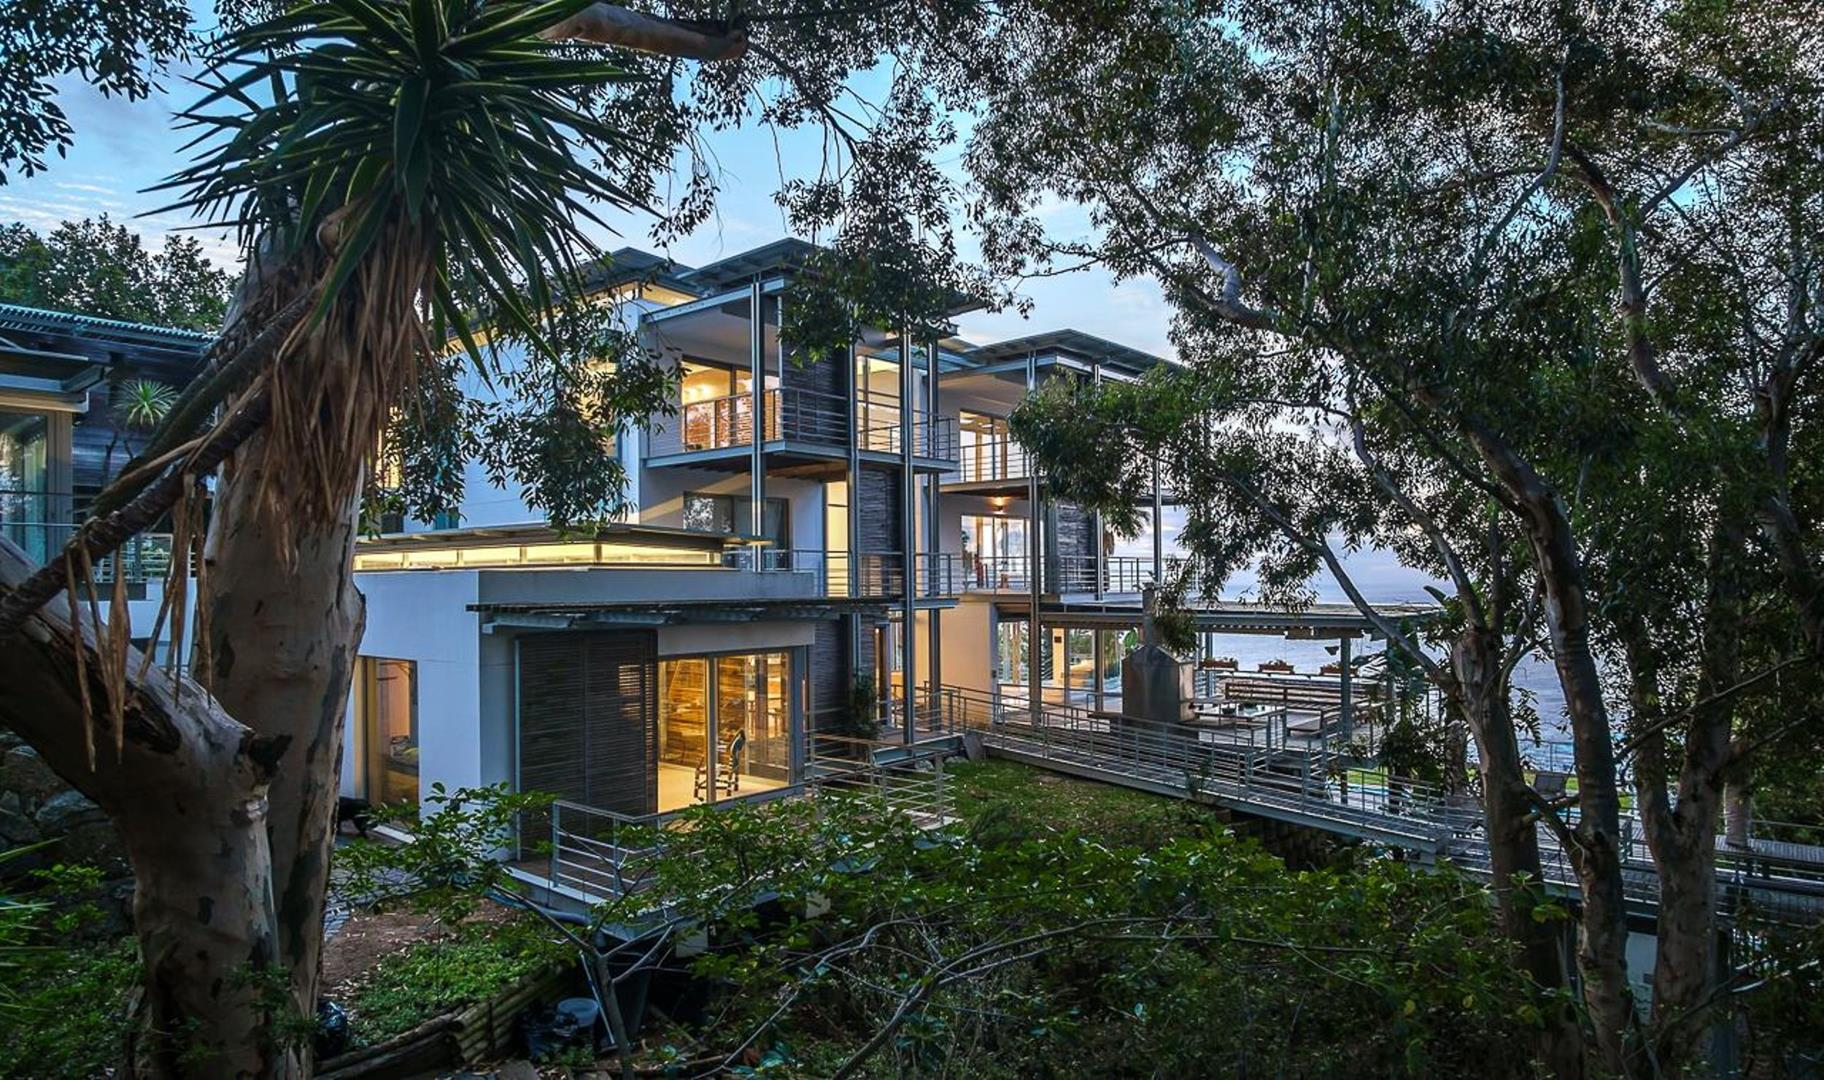 Sea side property in Cape Town, South Africa | The House |Jawitz Properties | Finest Residences